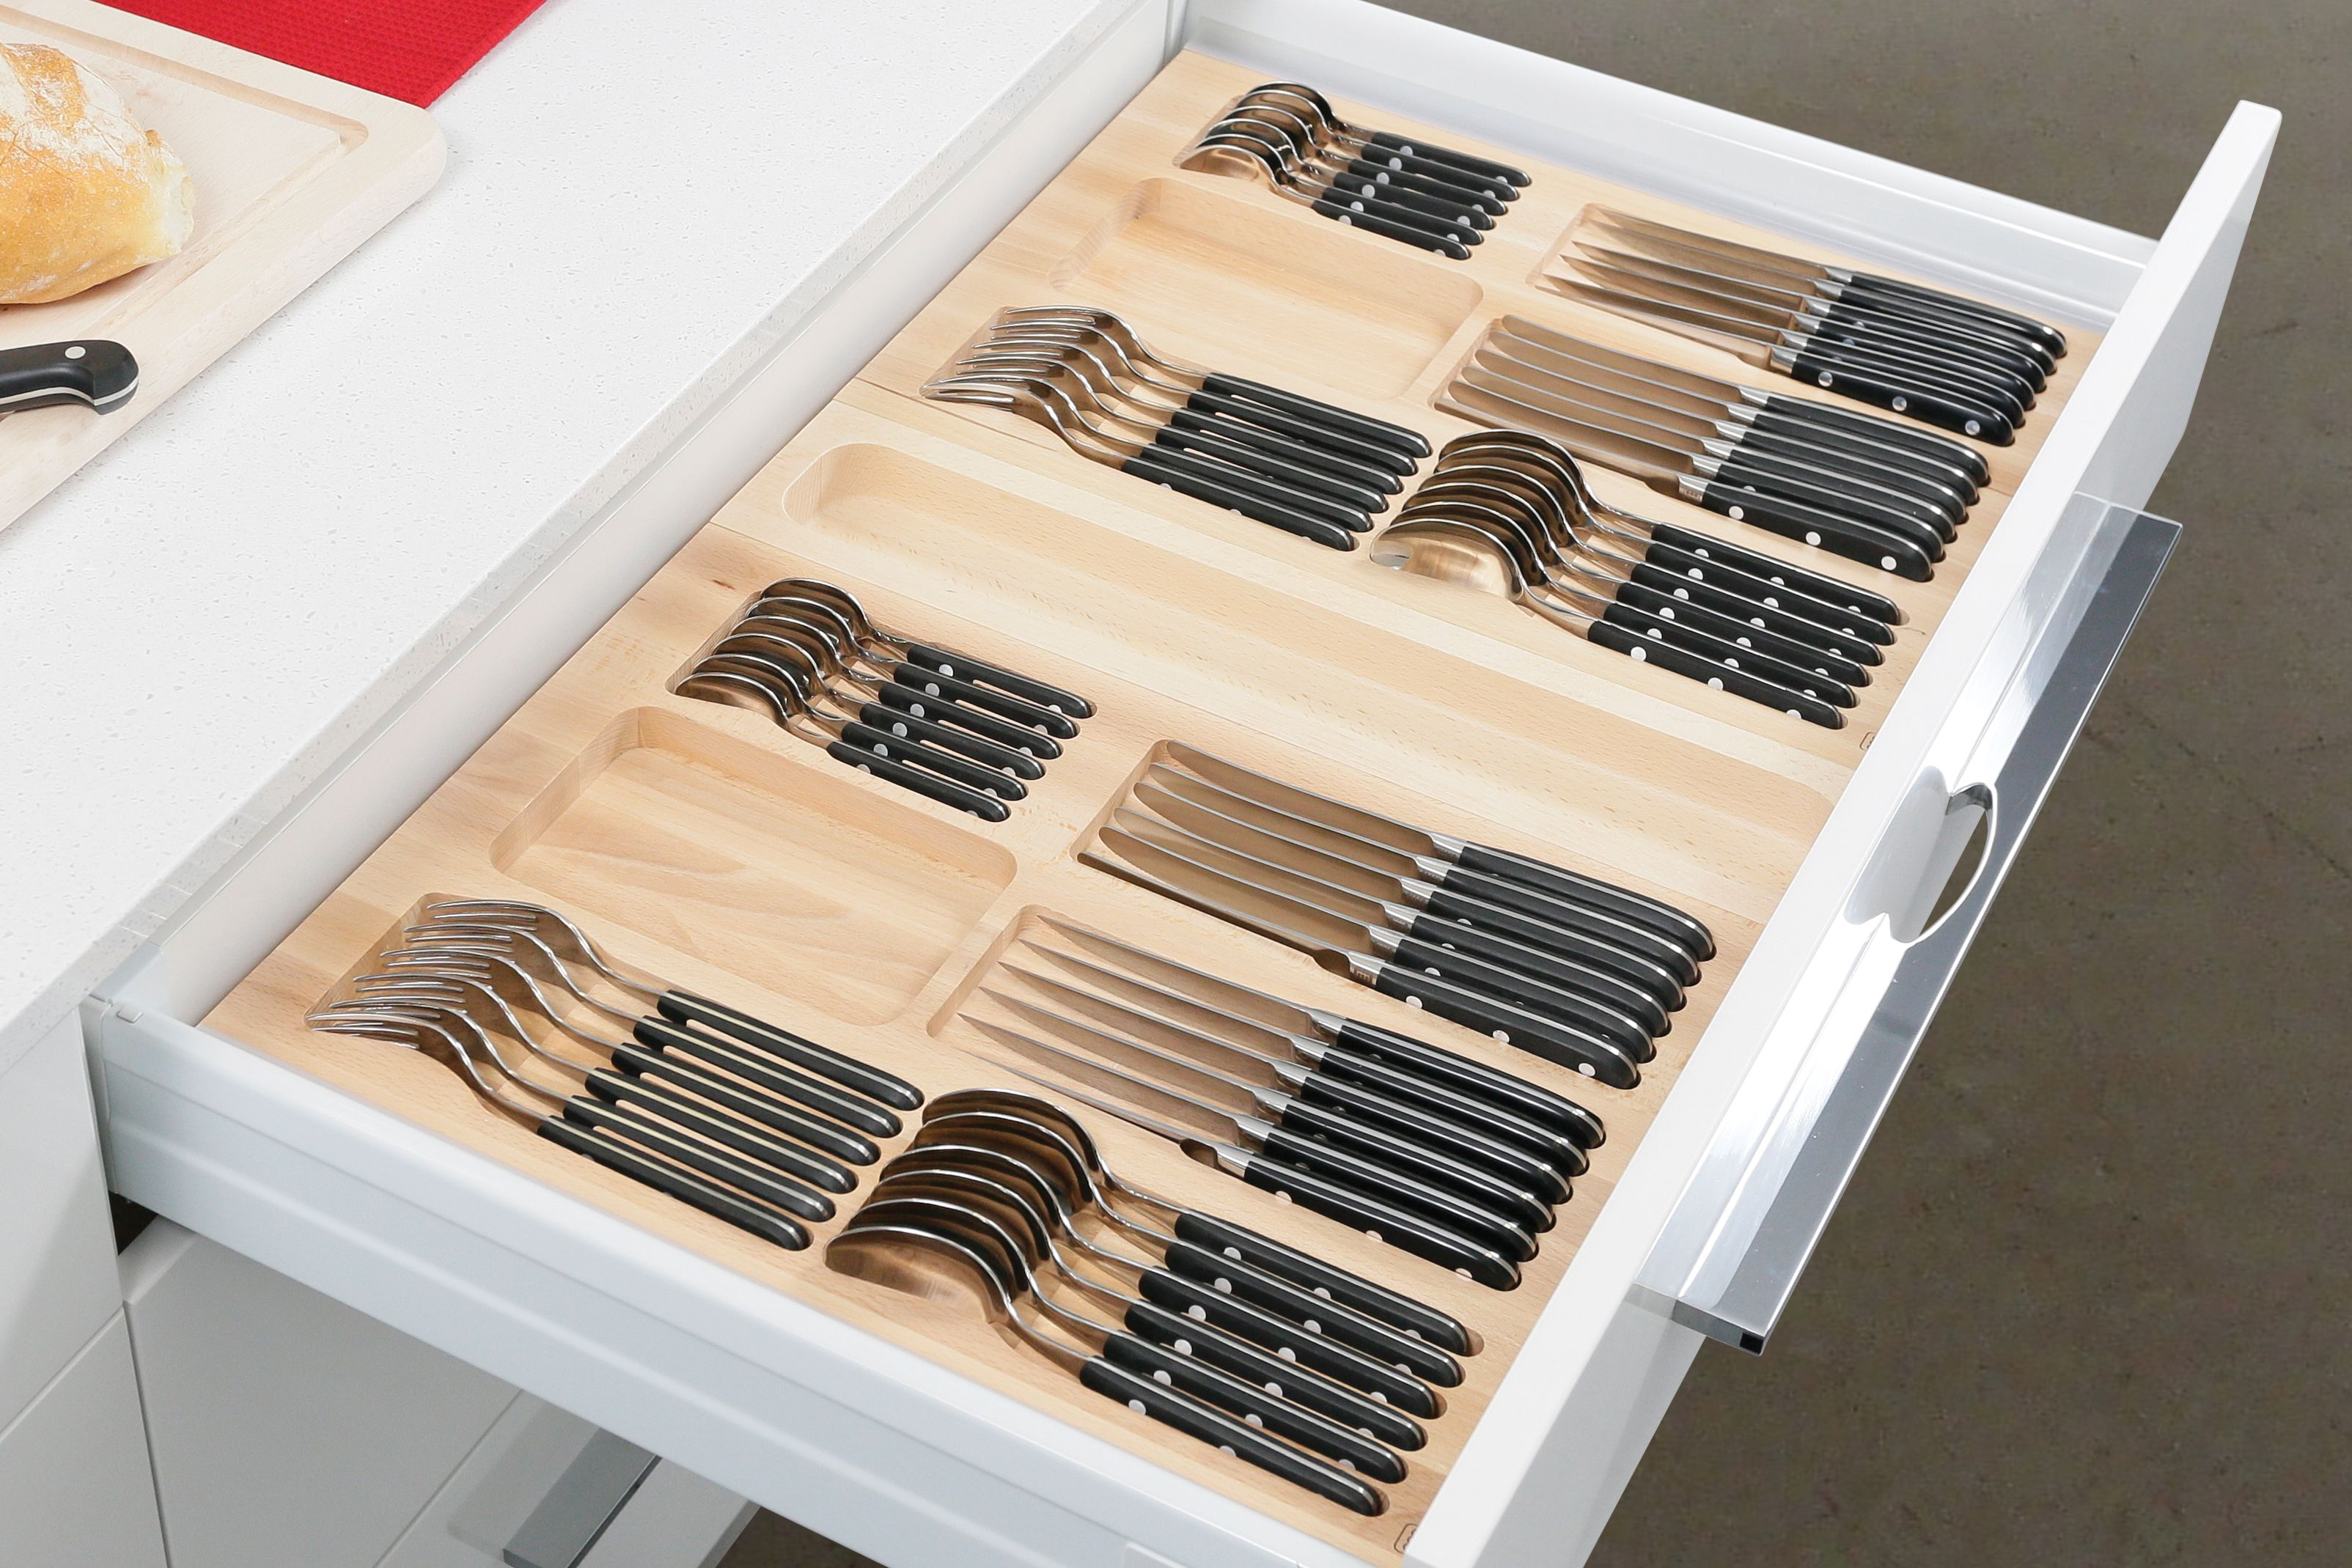 Essetre Gourmet-Line 600mm Cutlery Set. http://www.essetre.com.au ...